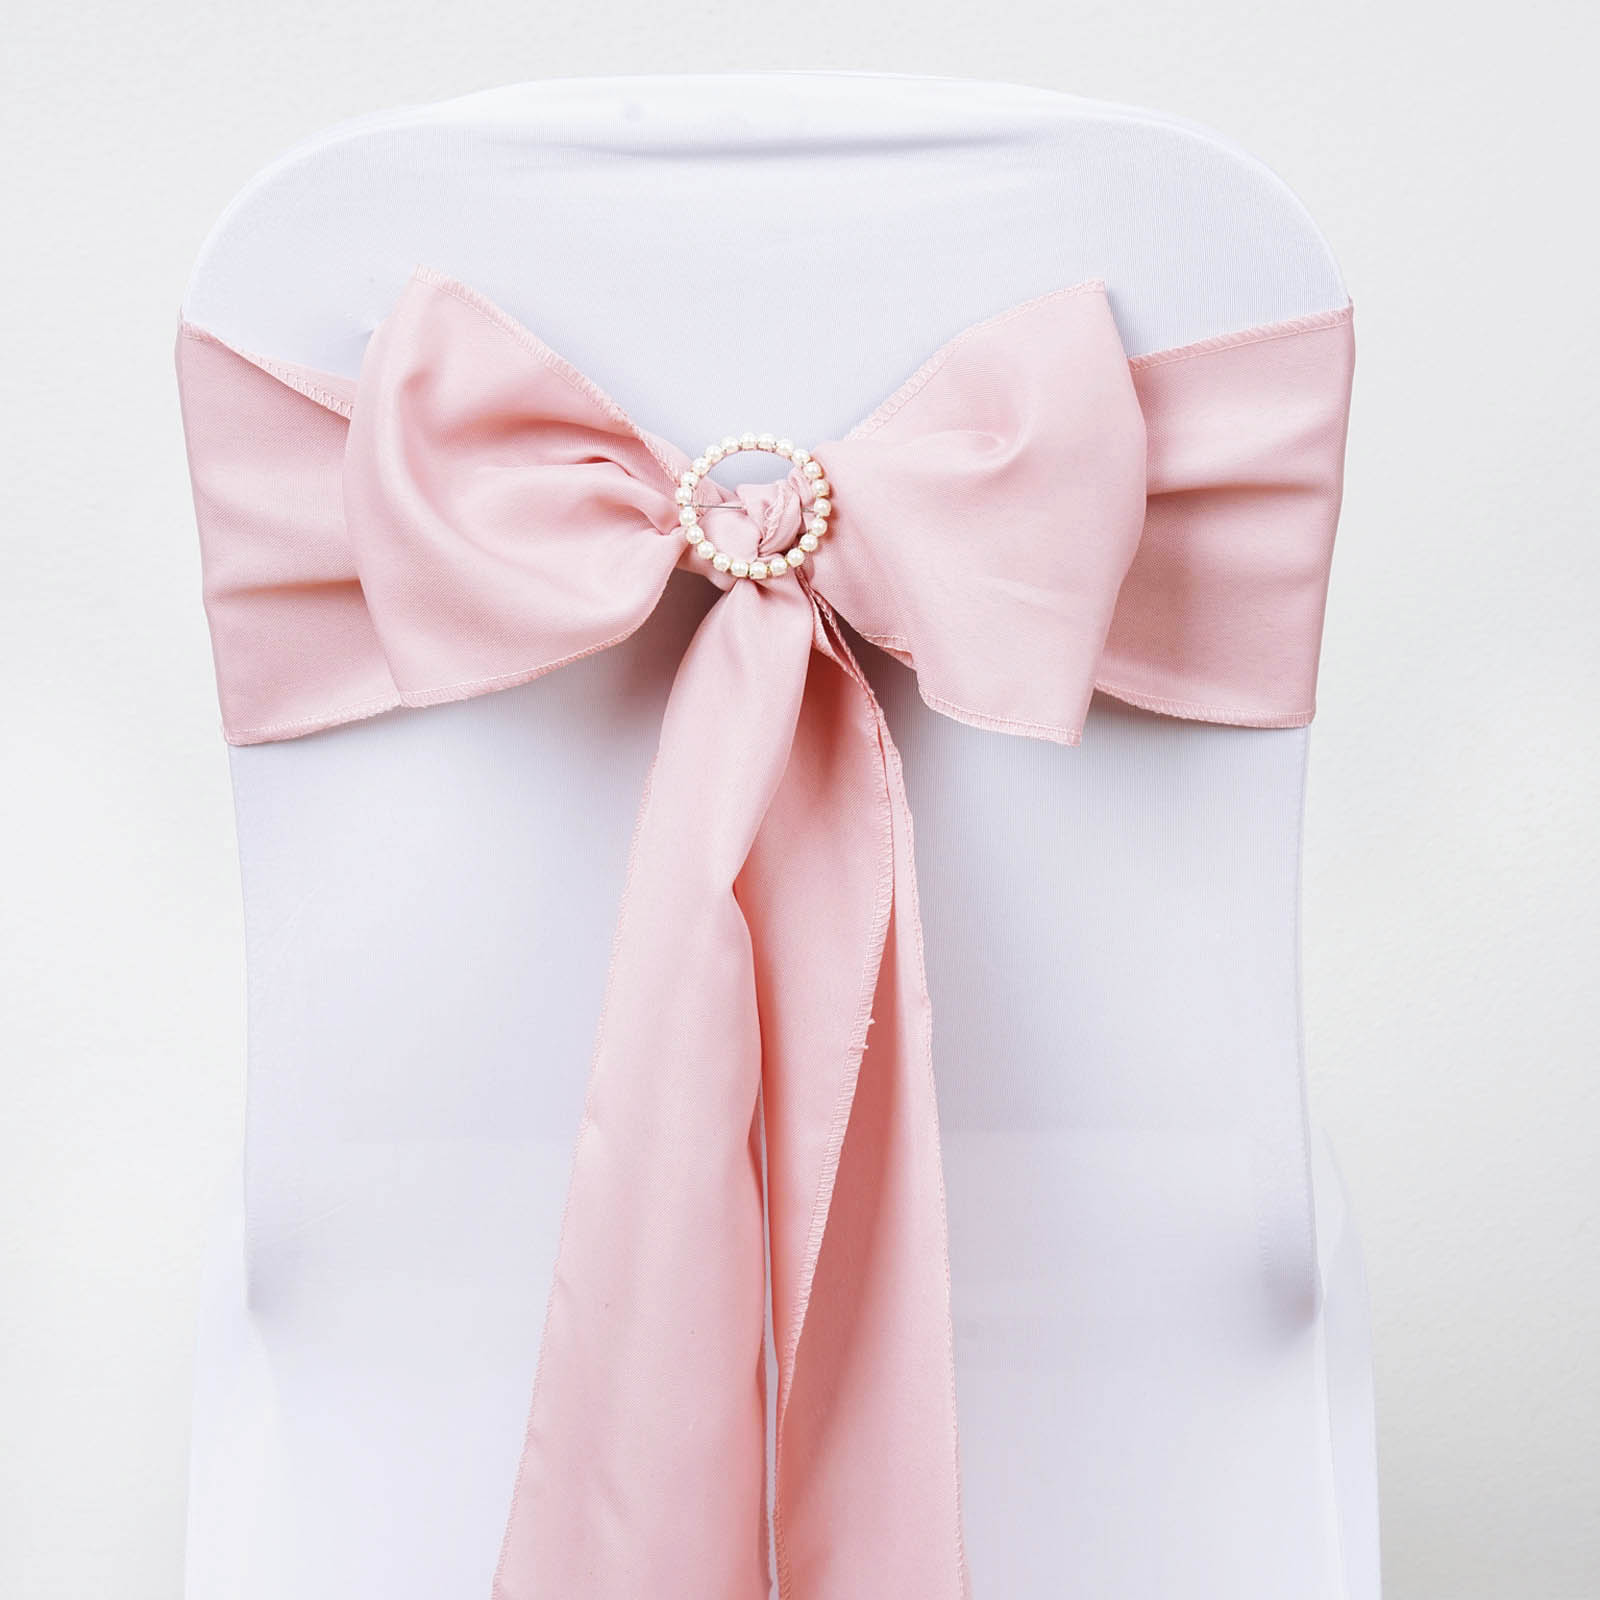 Chair Bows 20 Polyester Chair Sashes Ties Bows Wedding Party Ceremony